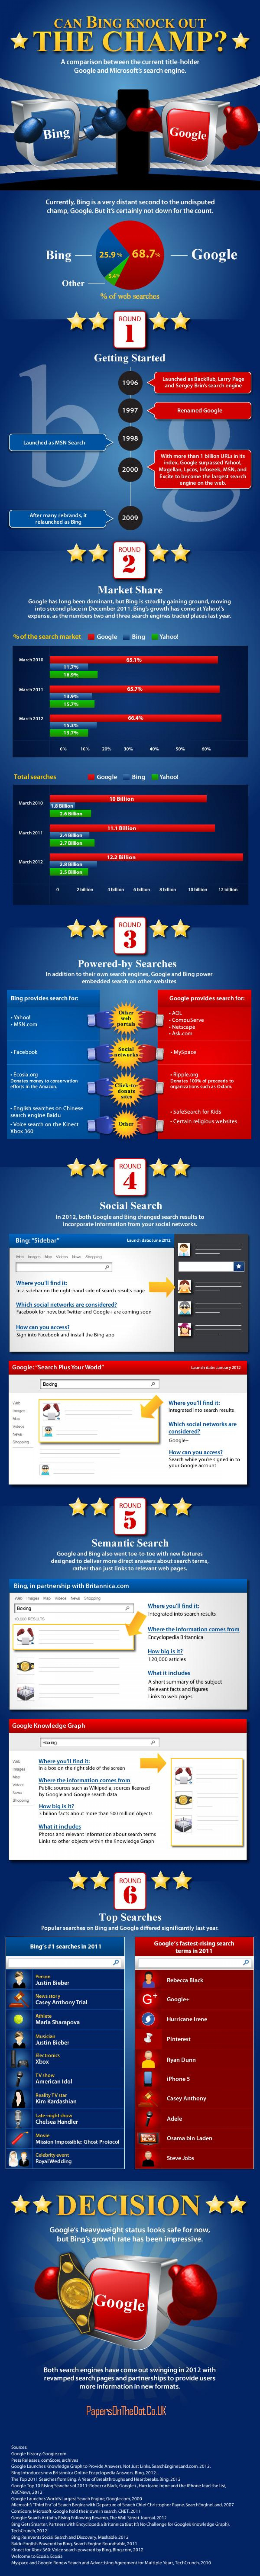 Can Bing knock out the Goolgle? Infographic